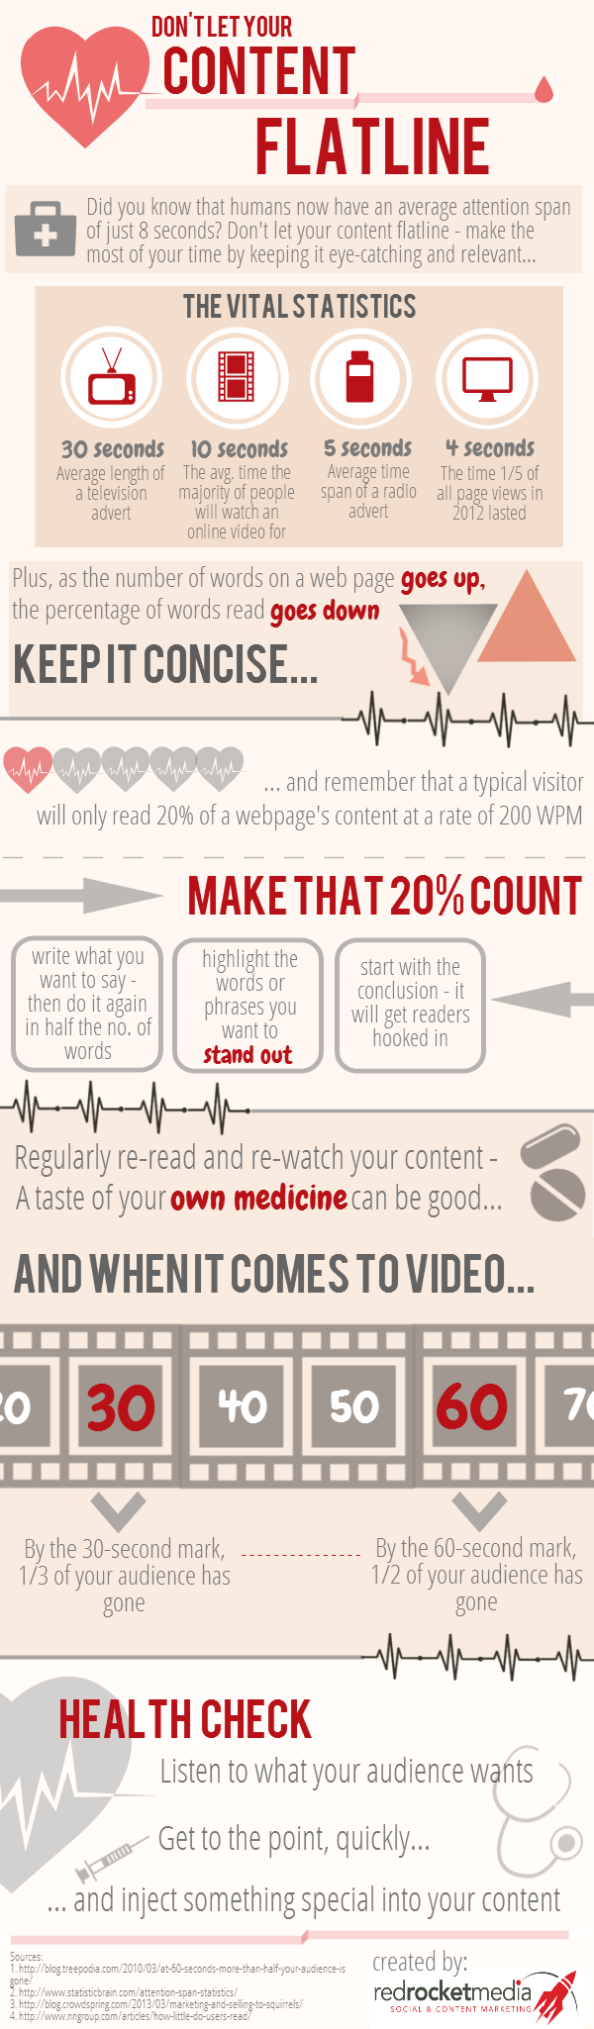 Content Marketing – Don't Let Your Content Flatline [Infographic]